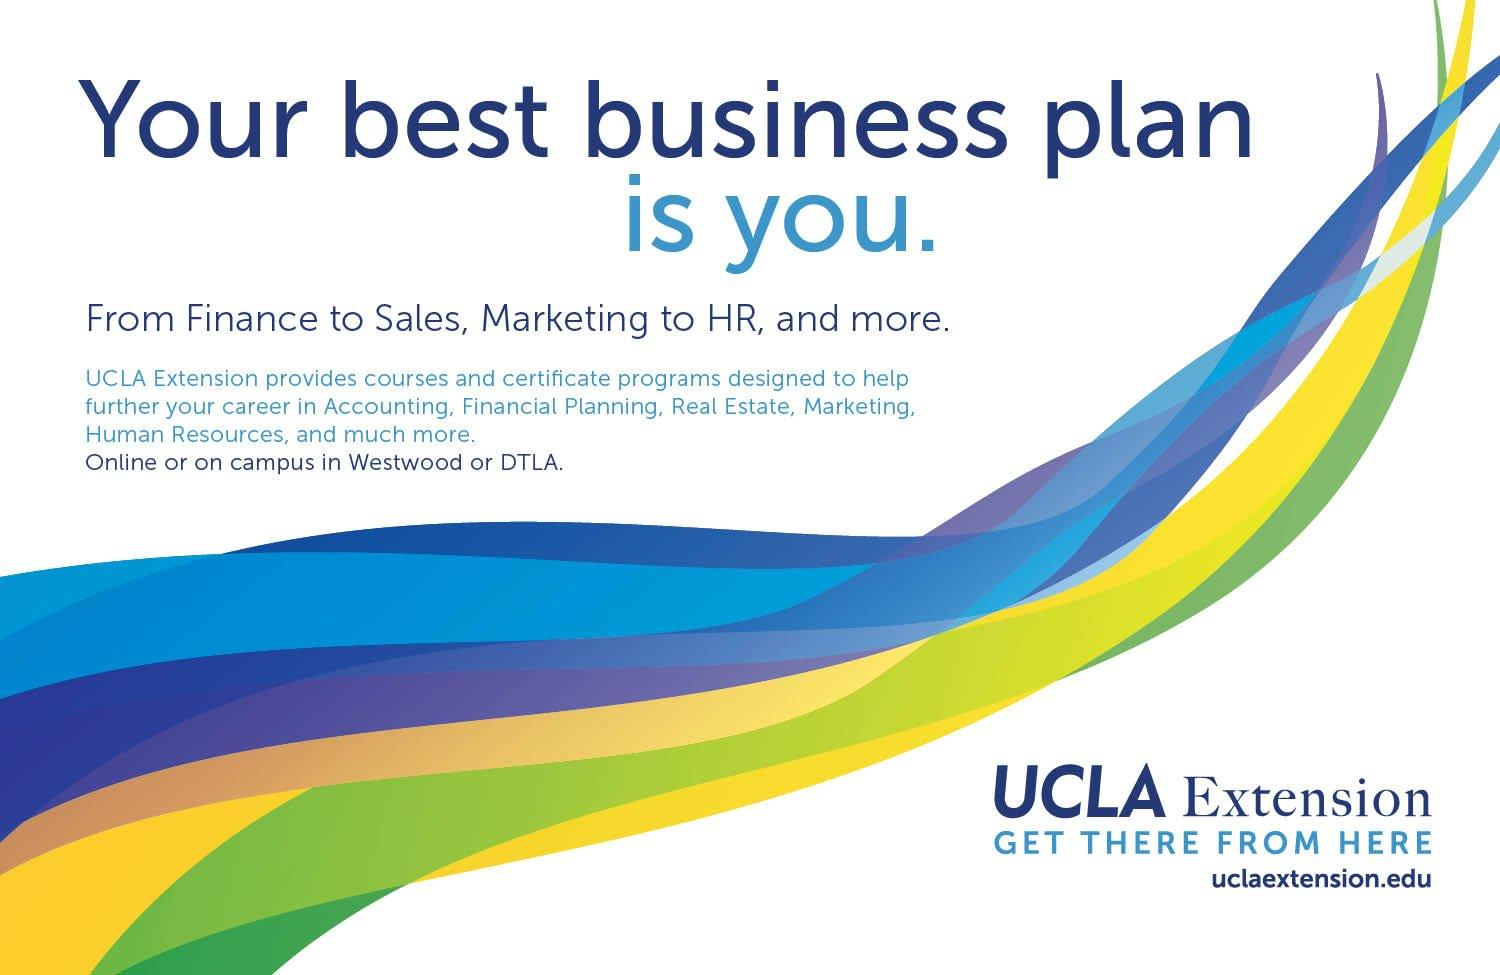 Ucla extension accounting best image ficcio internal audit certificate ucla extension programs begin on sept 19 cles online downtown westwood xflitez Image collections